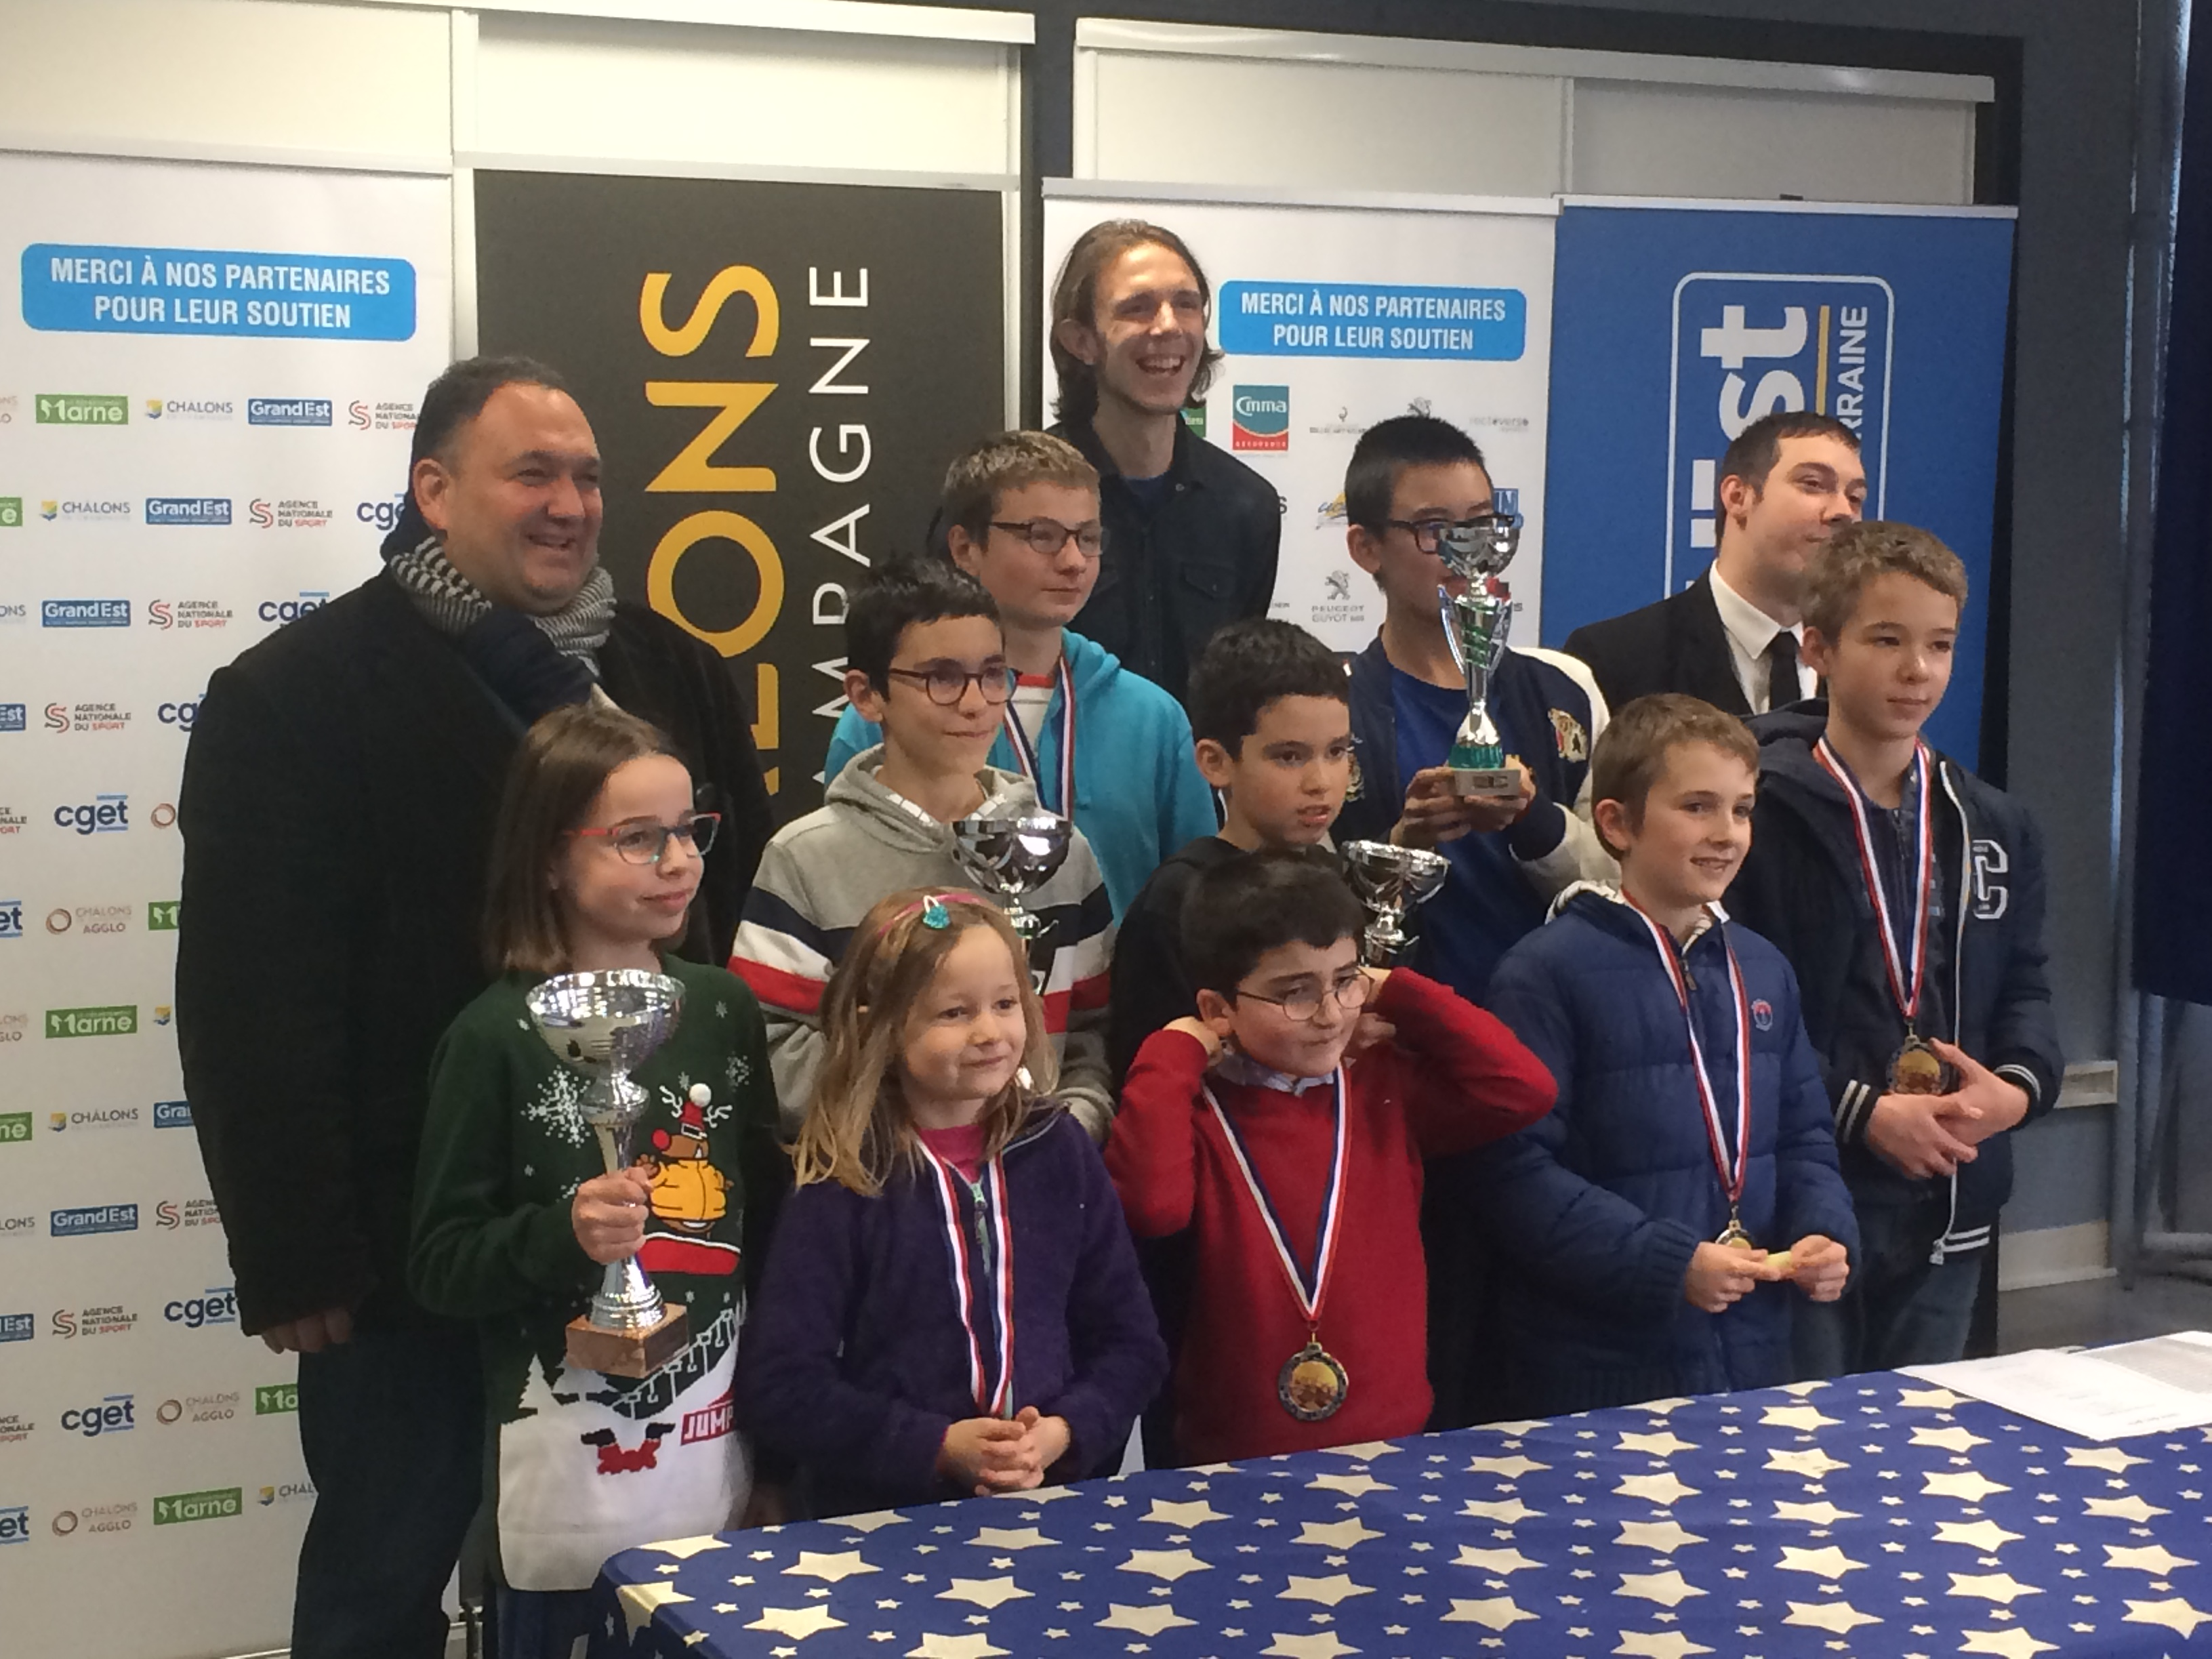 Chess results - Tournoi Chalons en Champagne (-1600) - 21-22 December 2019